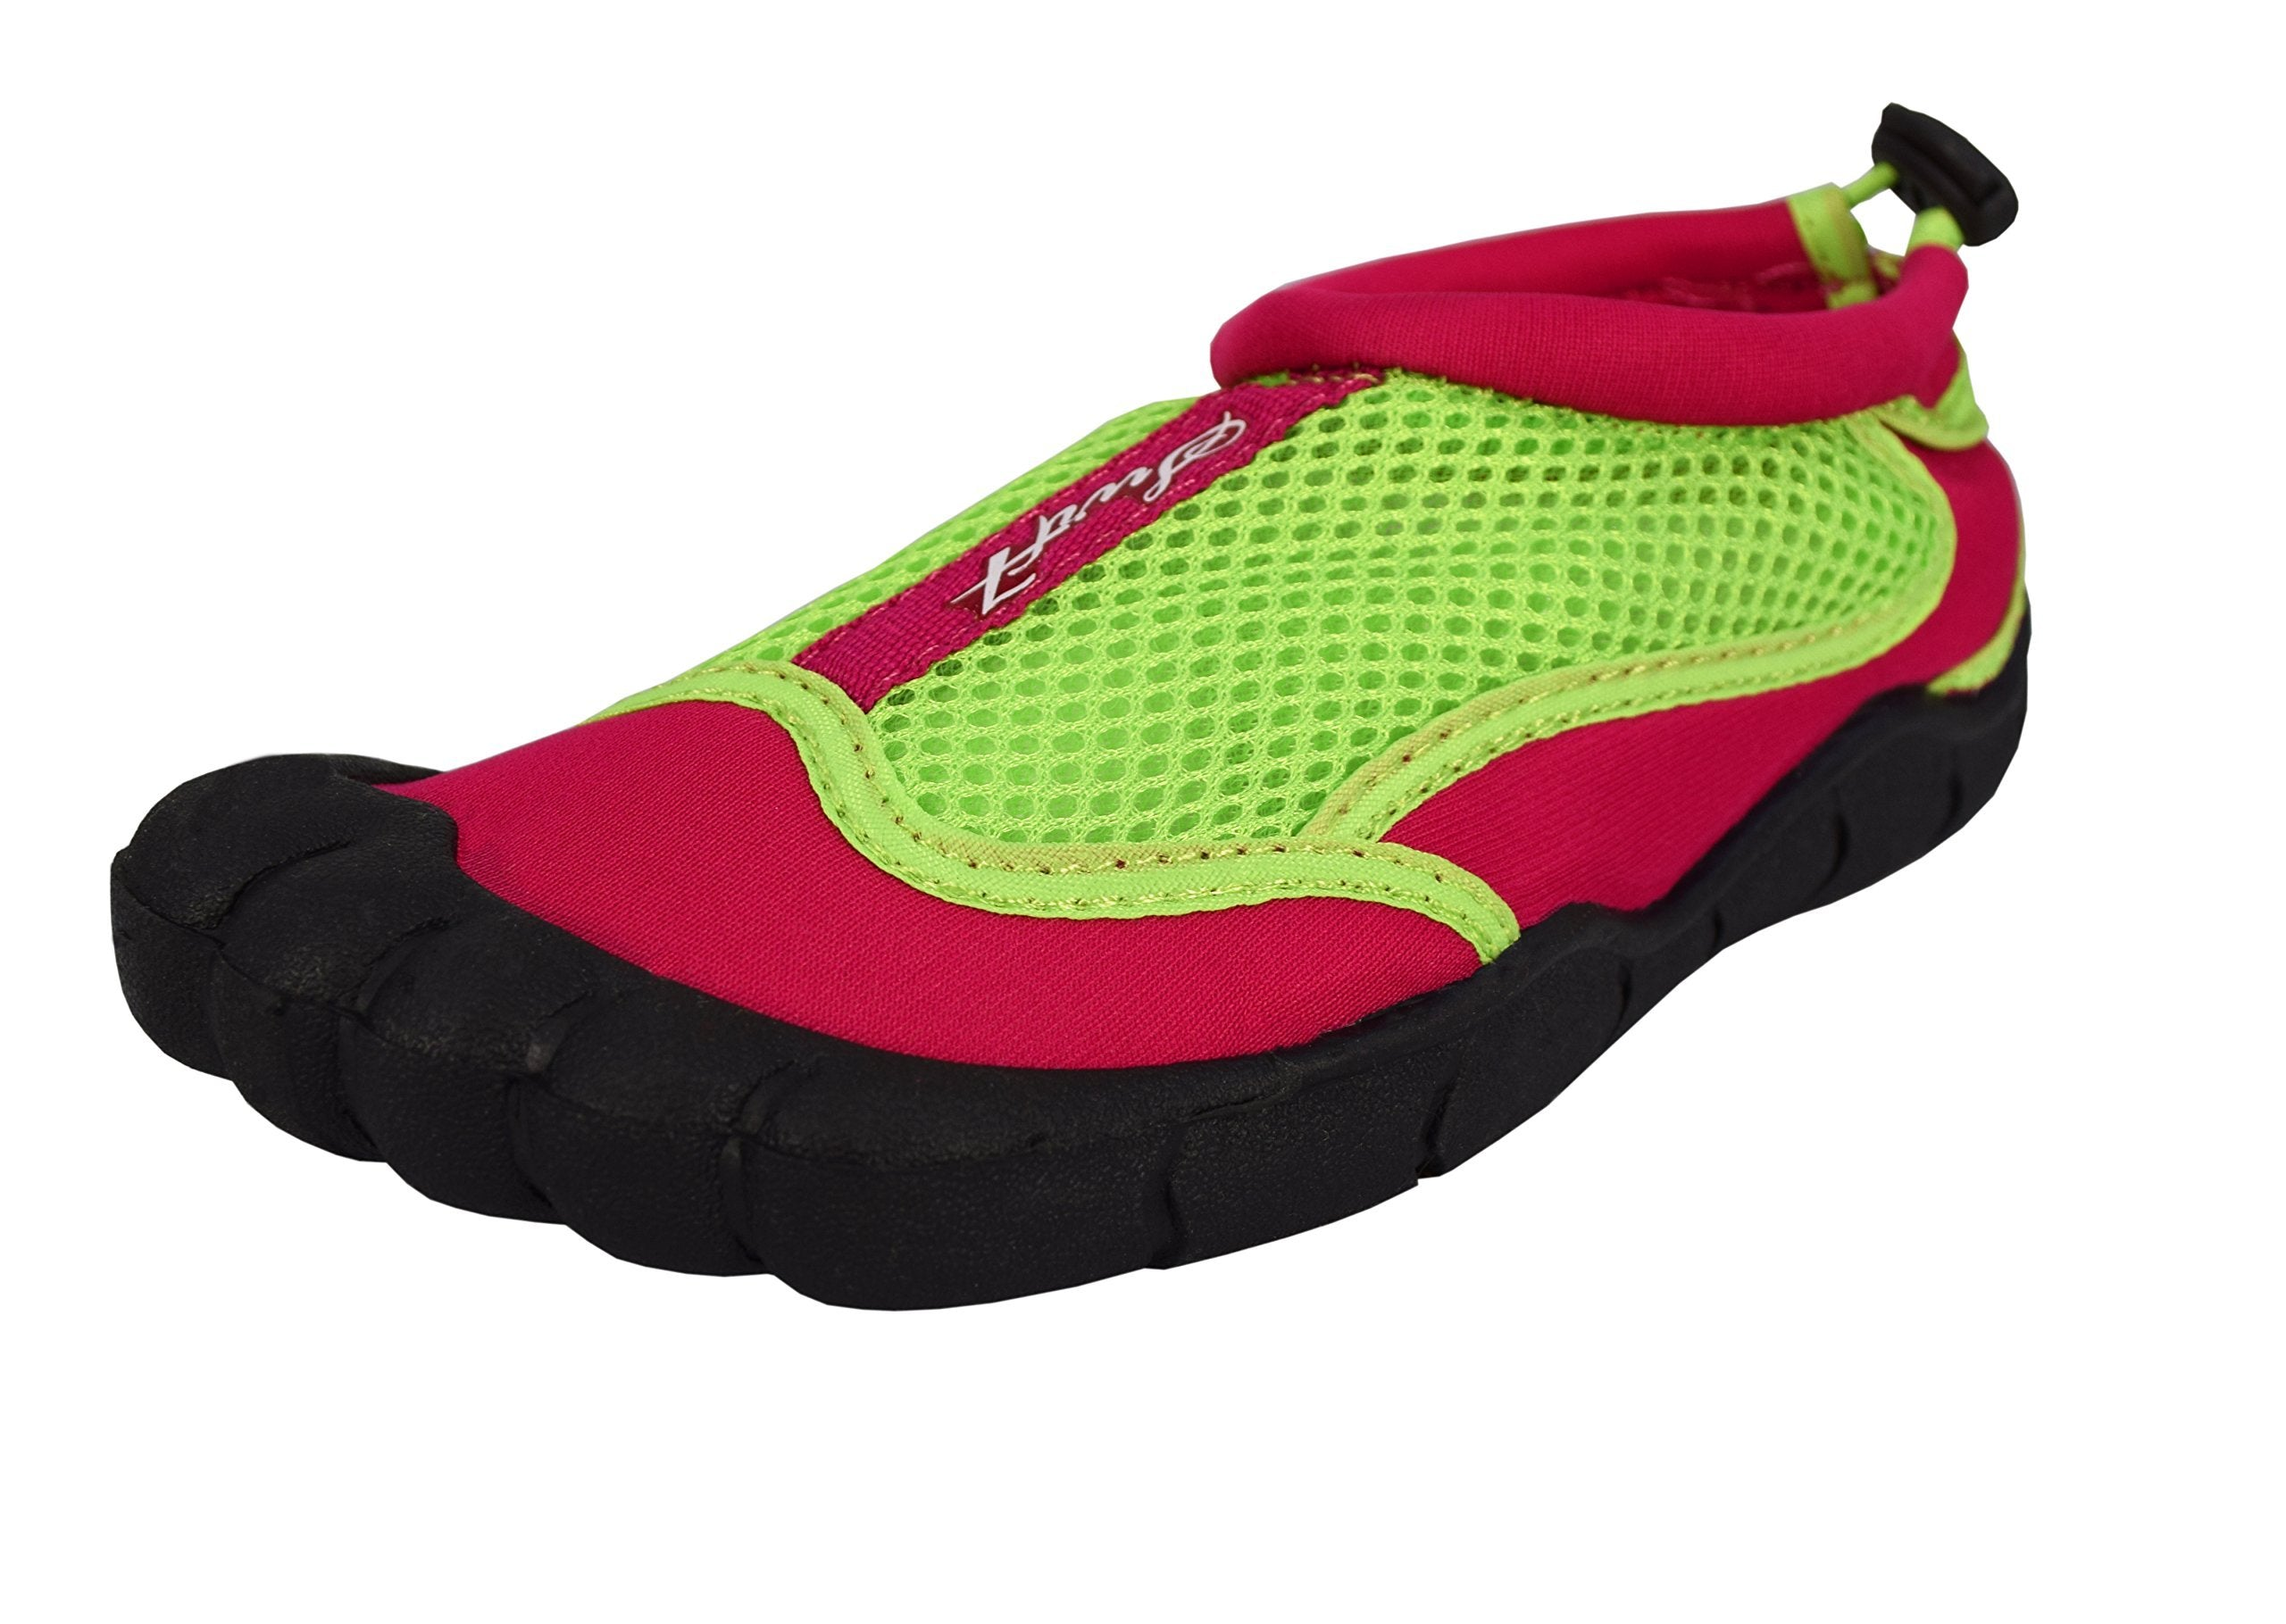 Shoes-Water Shoes Women Athletic Durable Quick Dry Aqua Beach